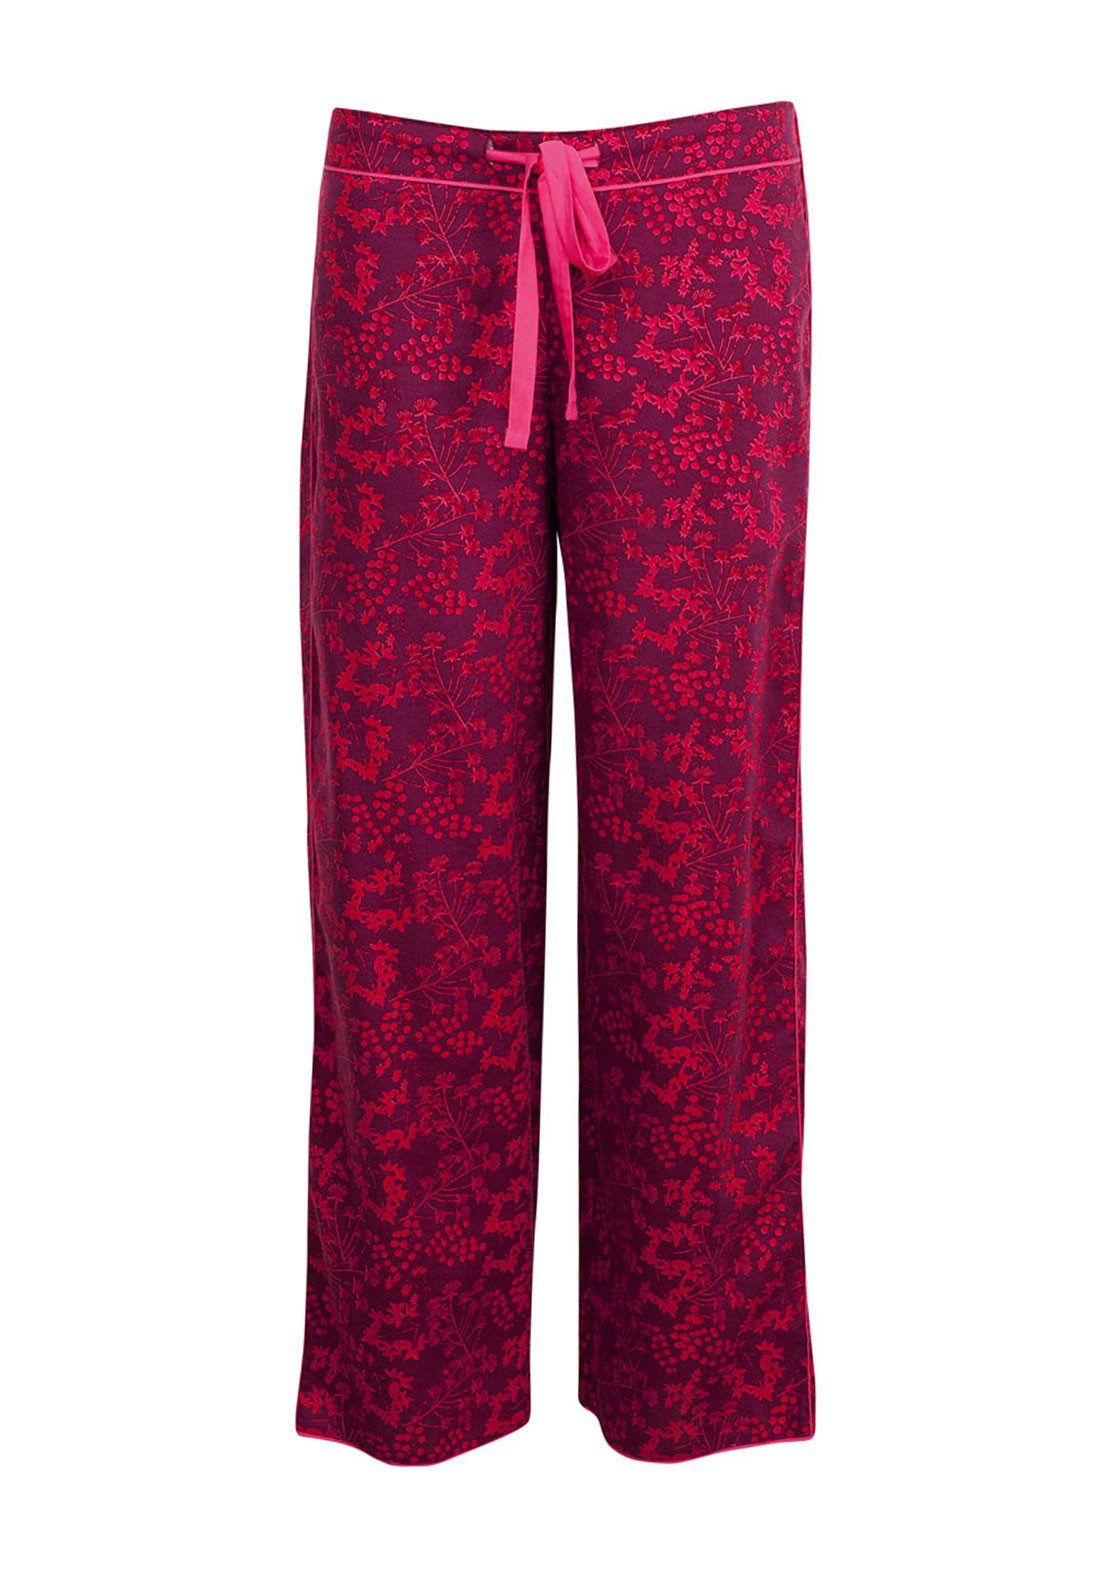 Cyberjammies Deck The Halls Printed Pyjama Bottoms, Wine